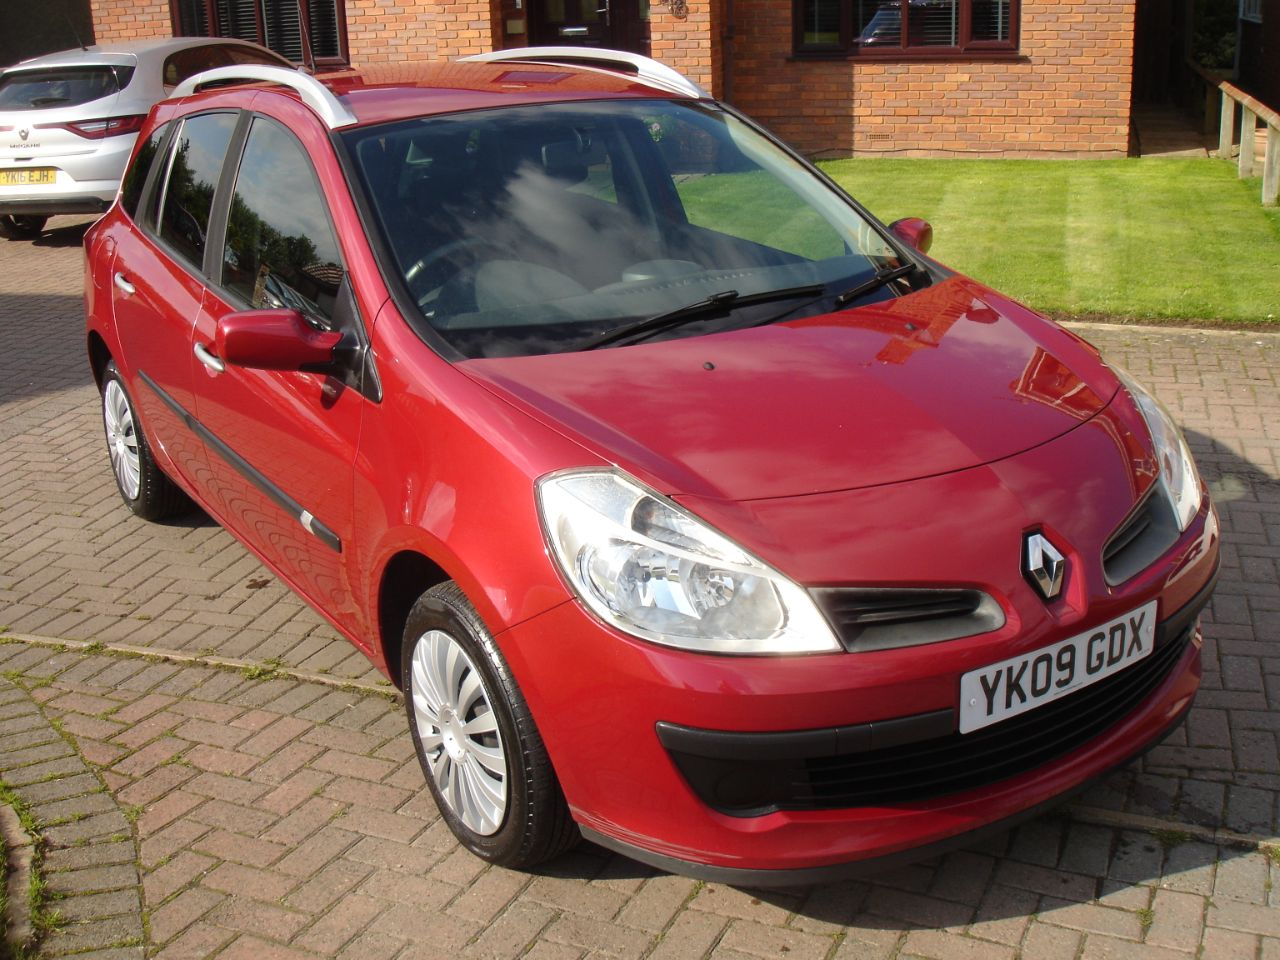 Renault Clio 1.2 16V Dynamique 5dr Estate Estate Petrol Metallic Red at Level Pitch Selby